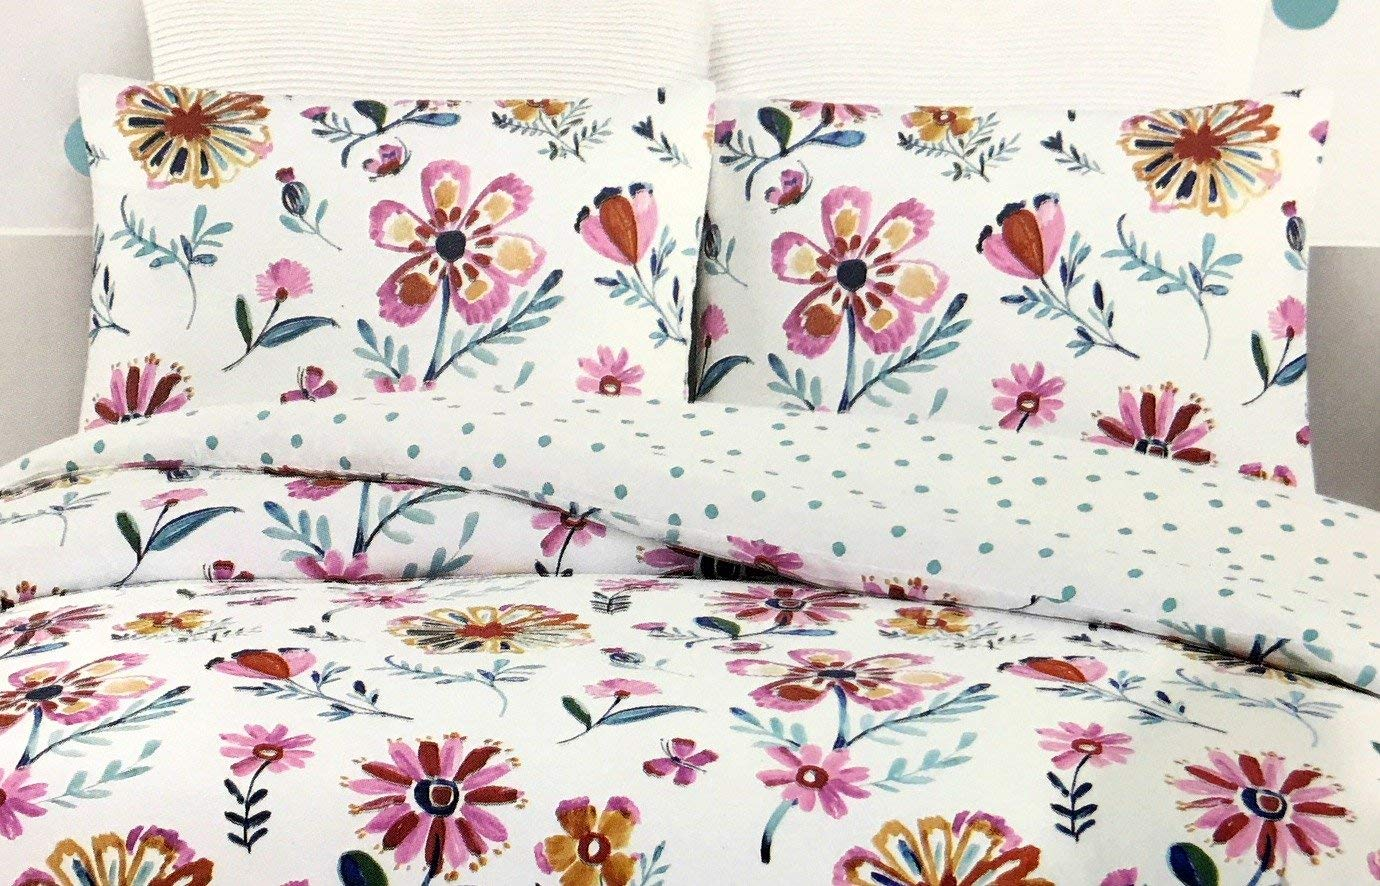 TUTU CUTE Girls Reversible 3-Piece Full/Queen Comforter Set Featuring Bright Flowers and Butterfiles